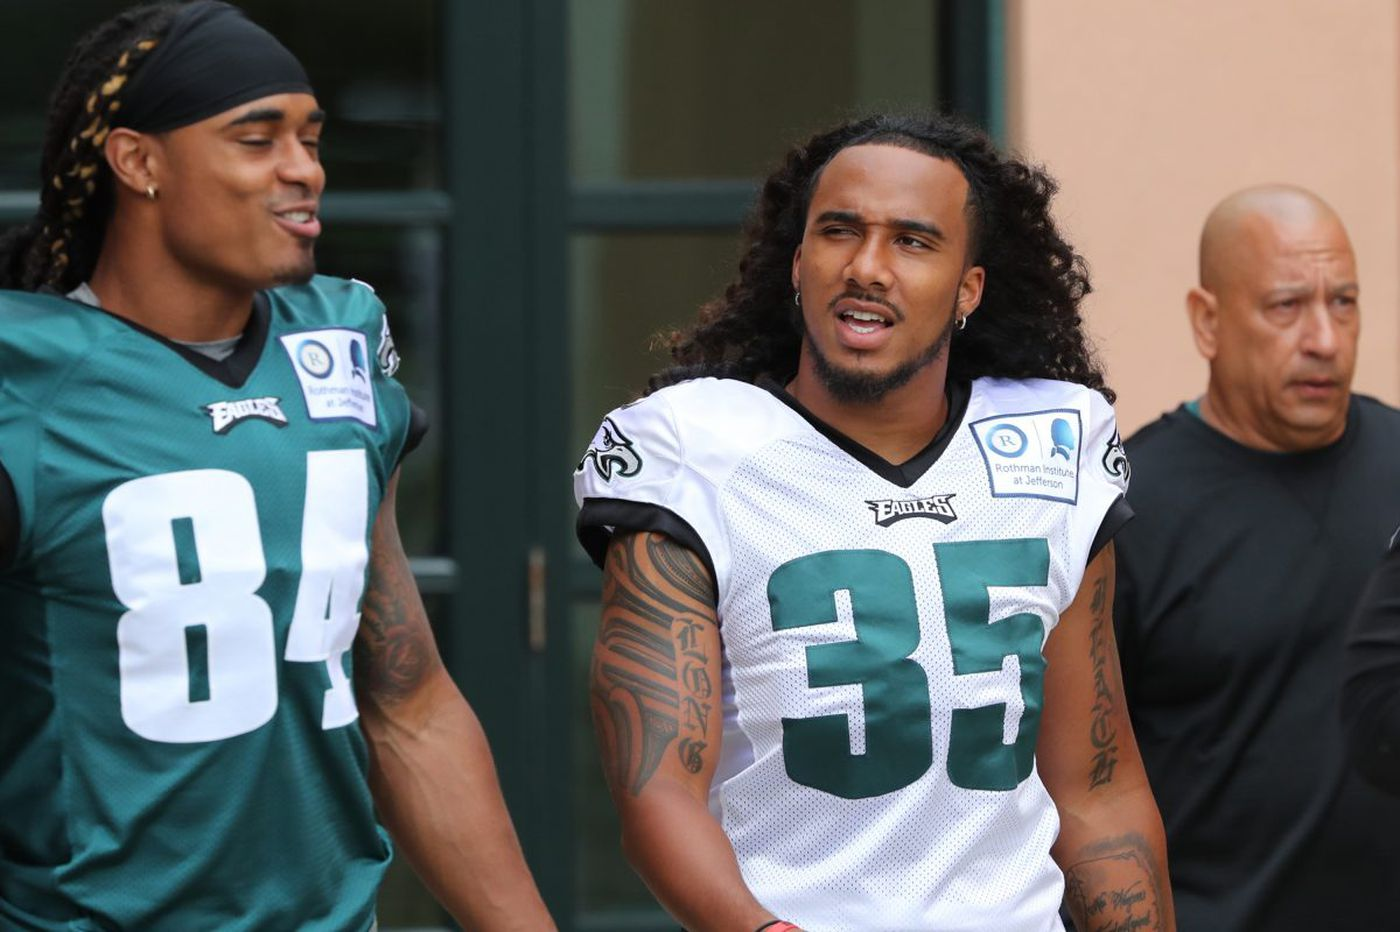 When will Eagles' cornerback Randall Goforth return after ACL injury?